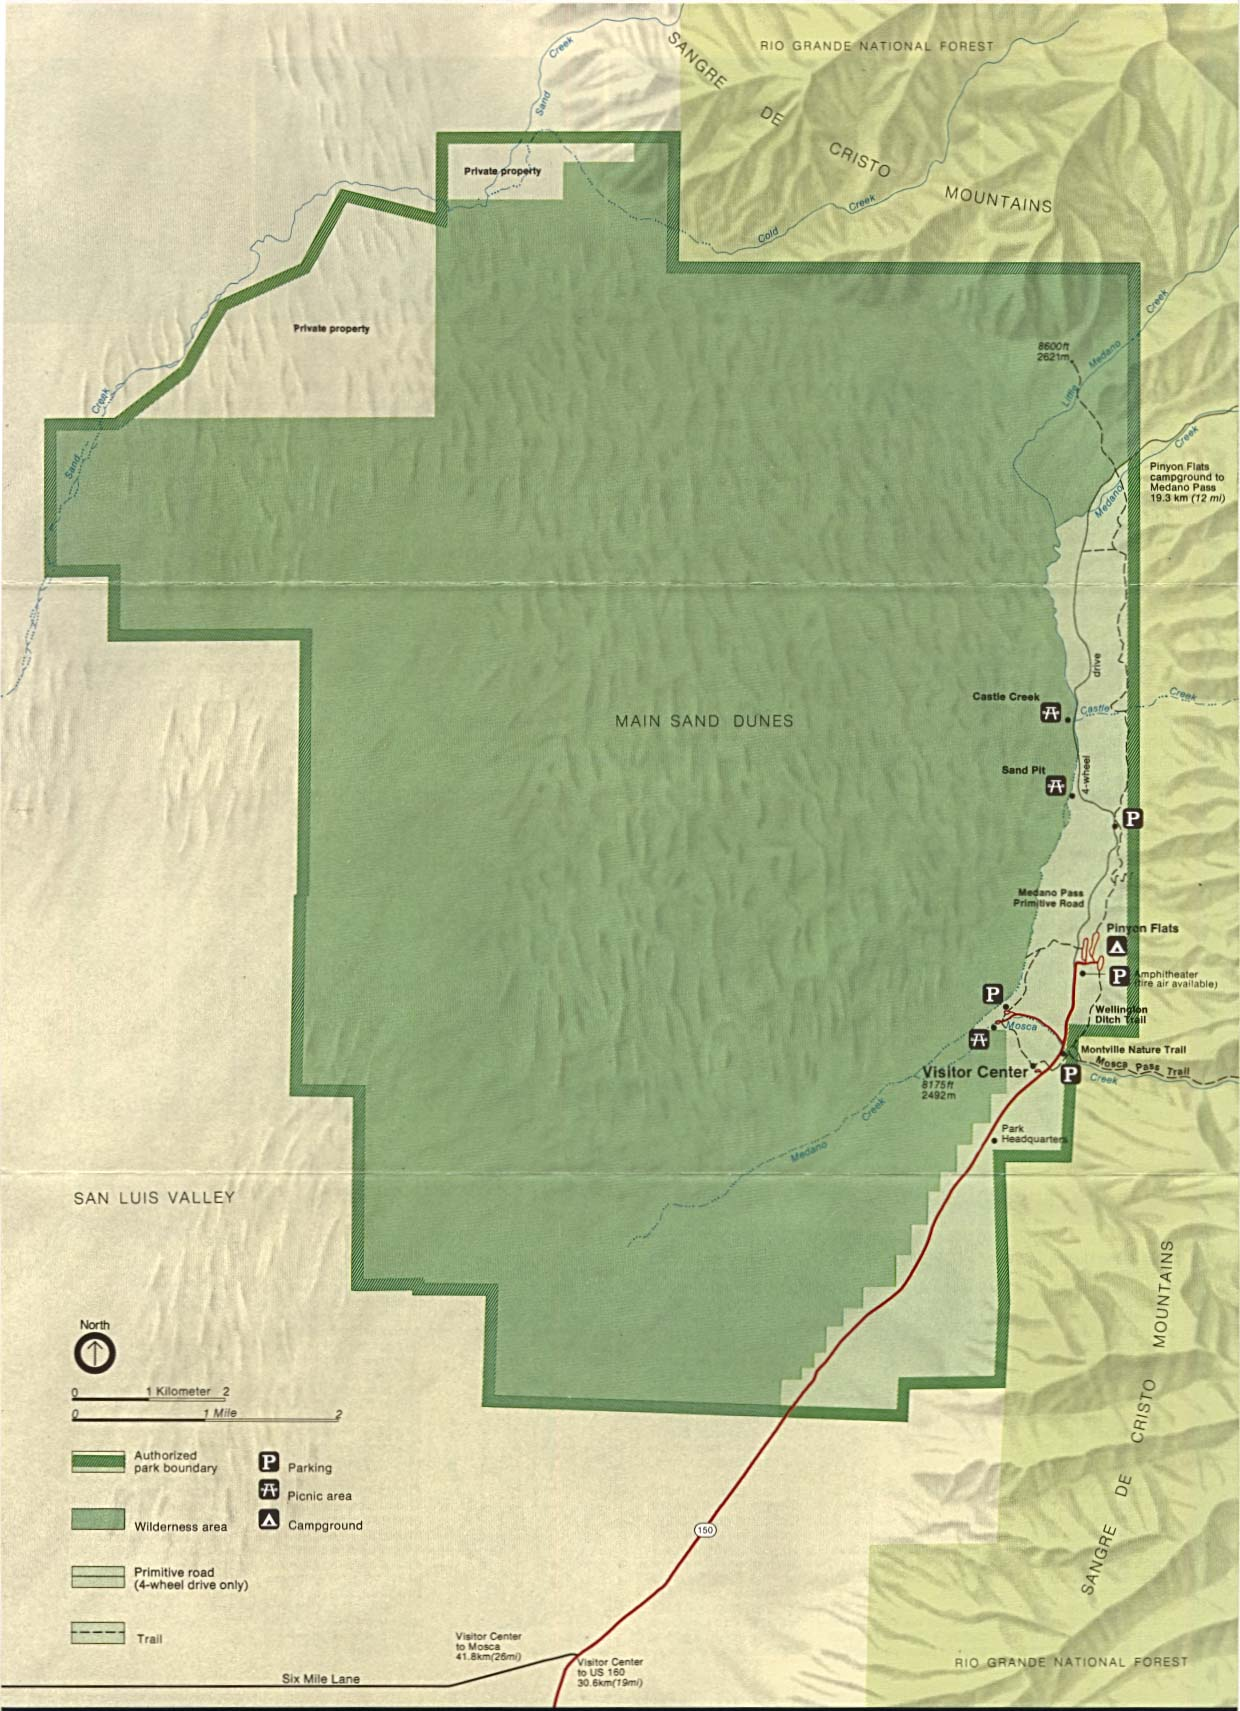 Maps of United States National Parks, Monuments and Historic Sites Great Sand Dunes National Monument [Colorado] (Park Map / Shaded Relief) 1994 (254K)